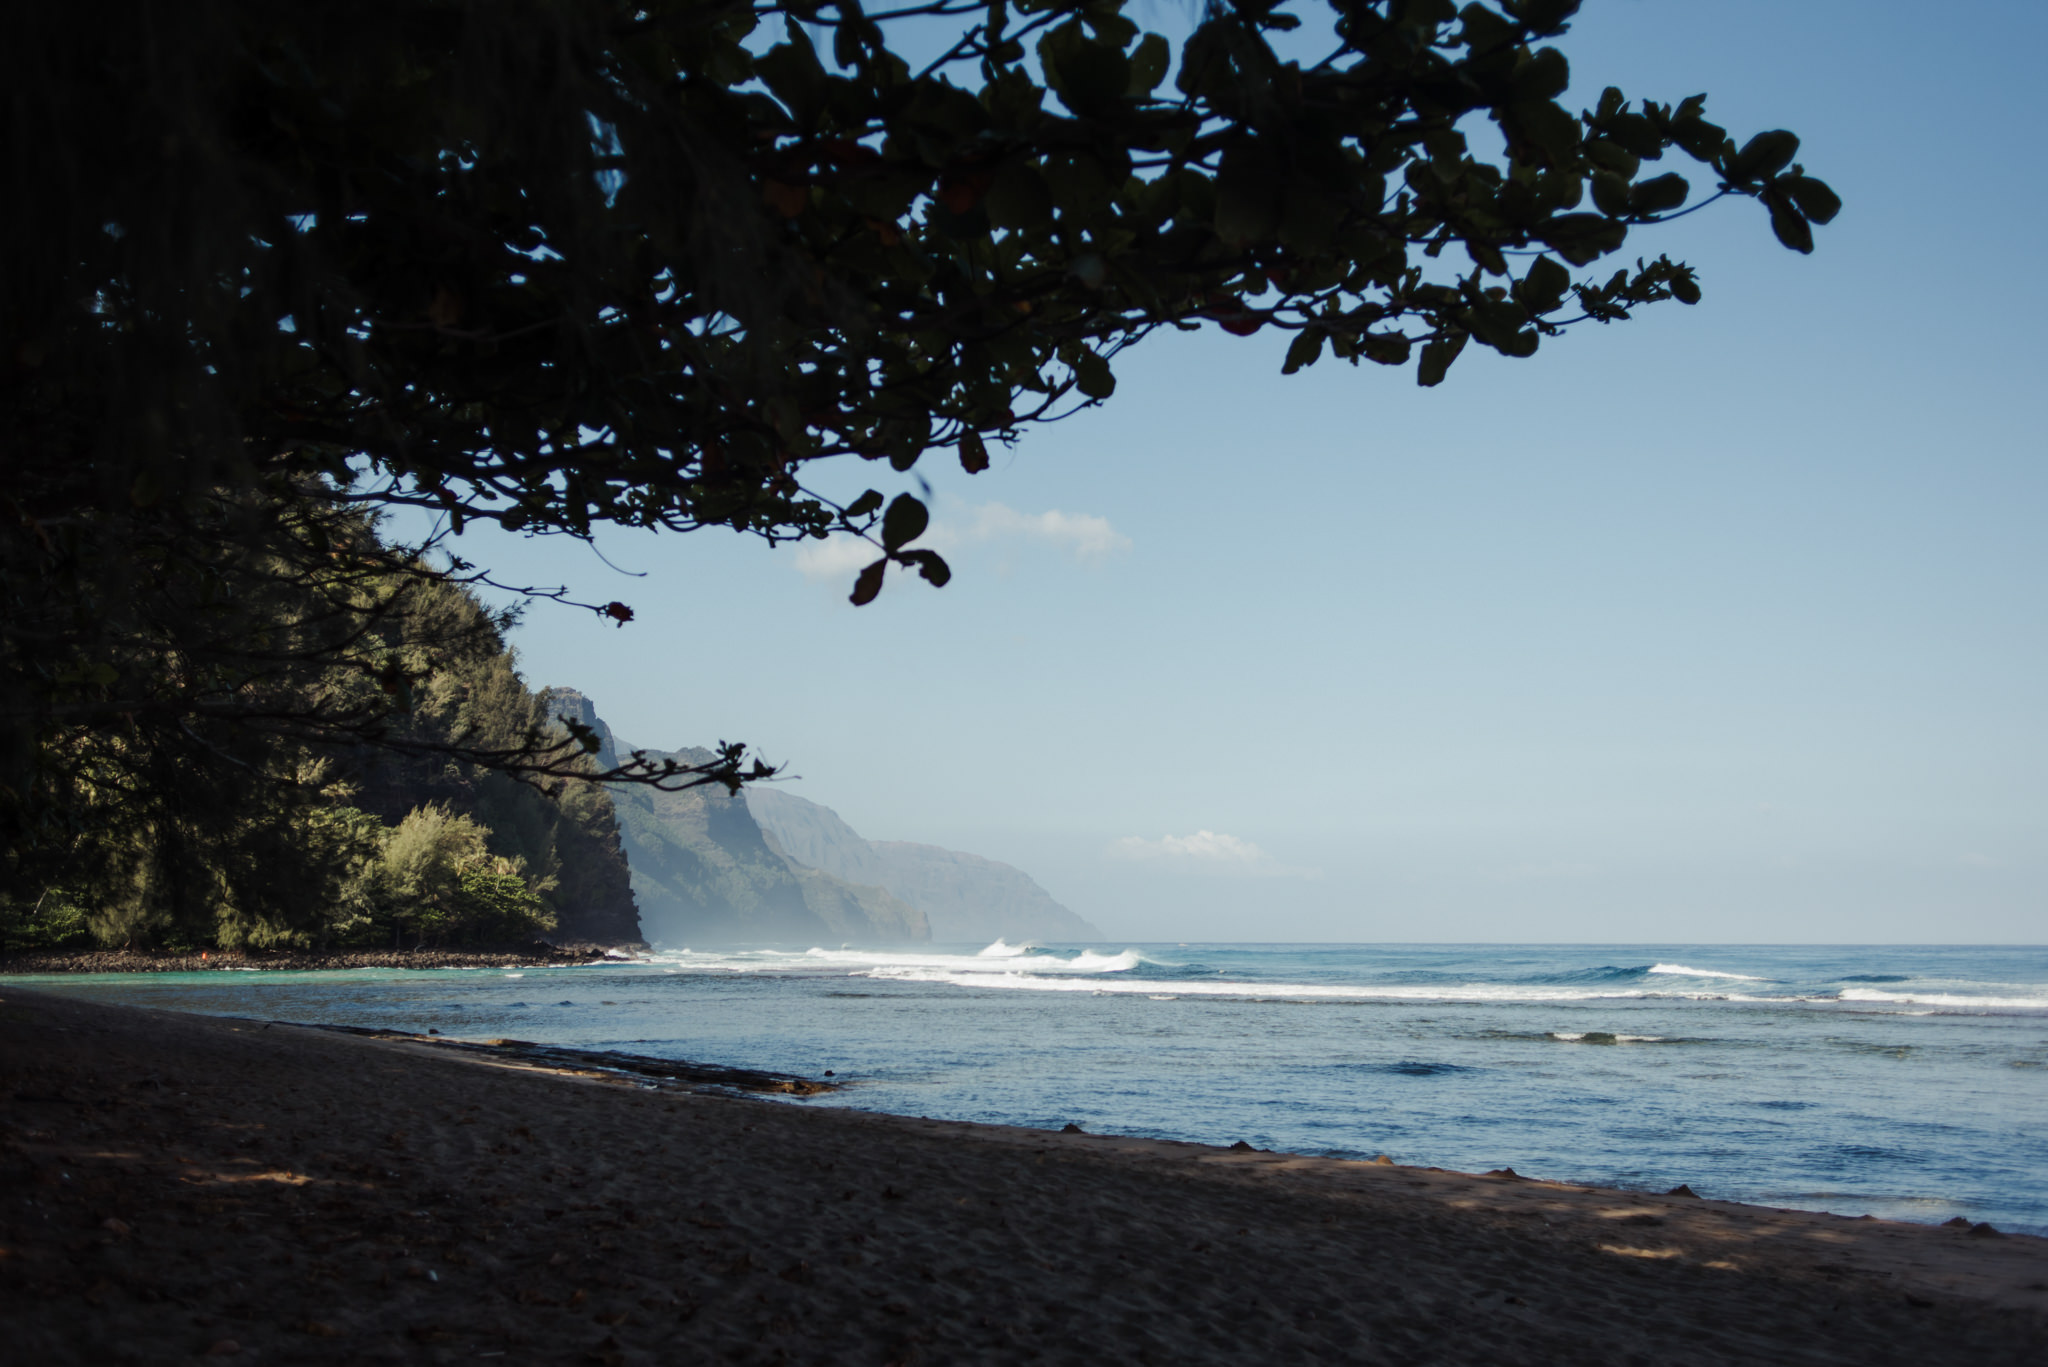 Ke'e beach in Kauai